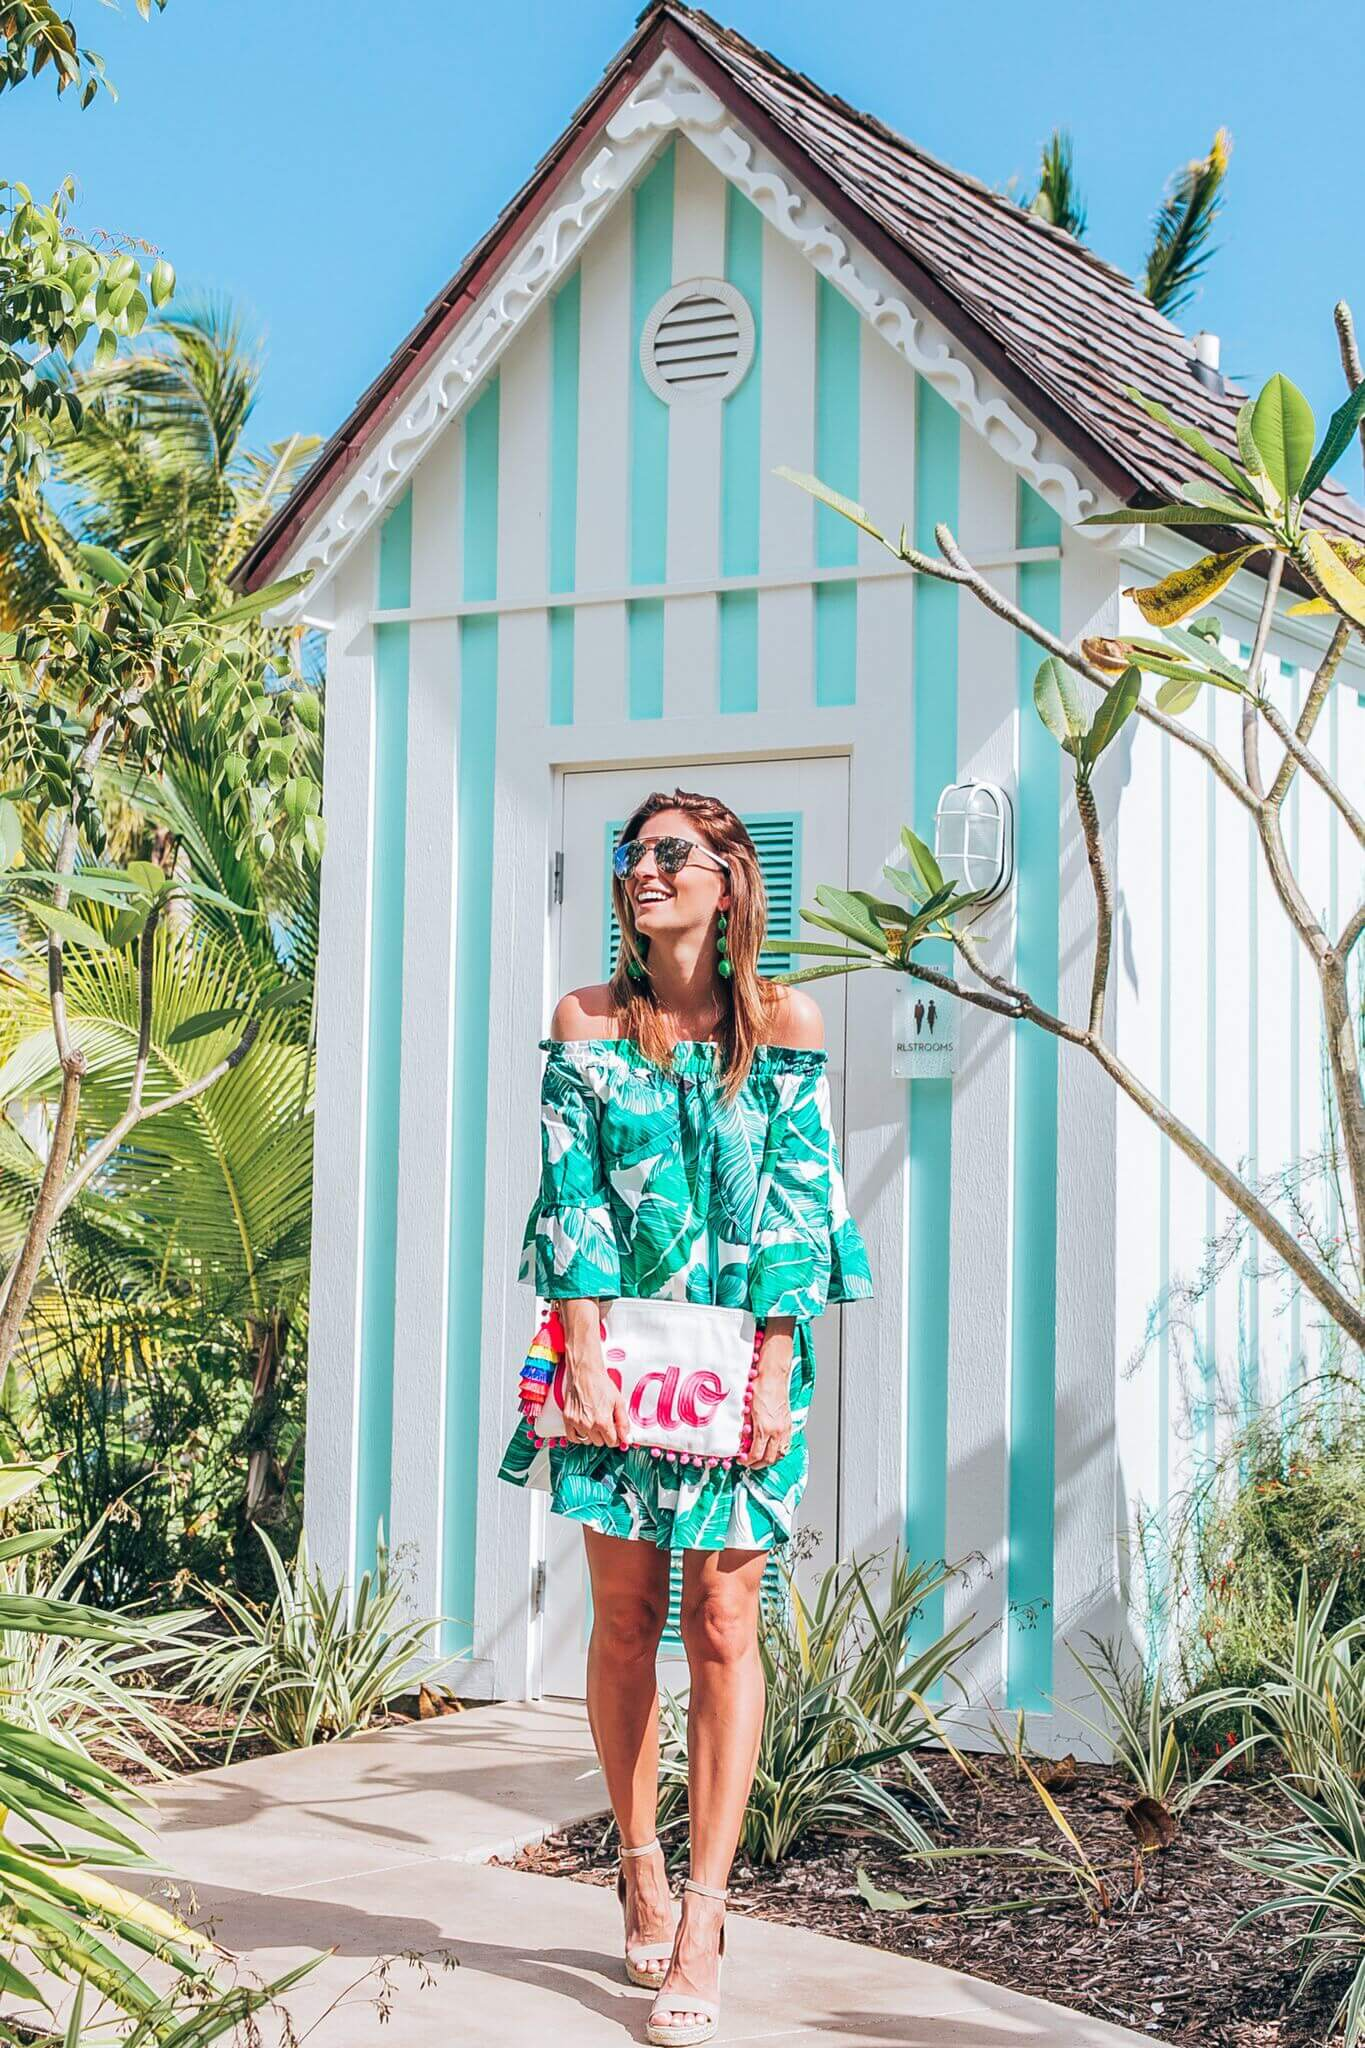 Palm print summer dress, ciao tassel and pom pom clutch, nude espadrilles, green drop earrings, dior so real sunglasses, mandy furnis sparkleshinylove, baha mar resort style